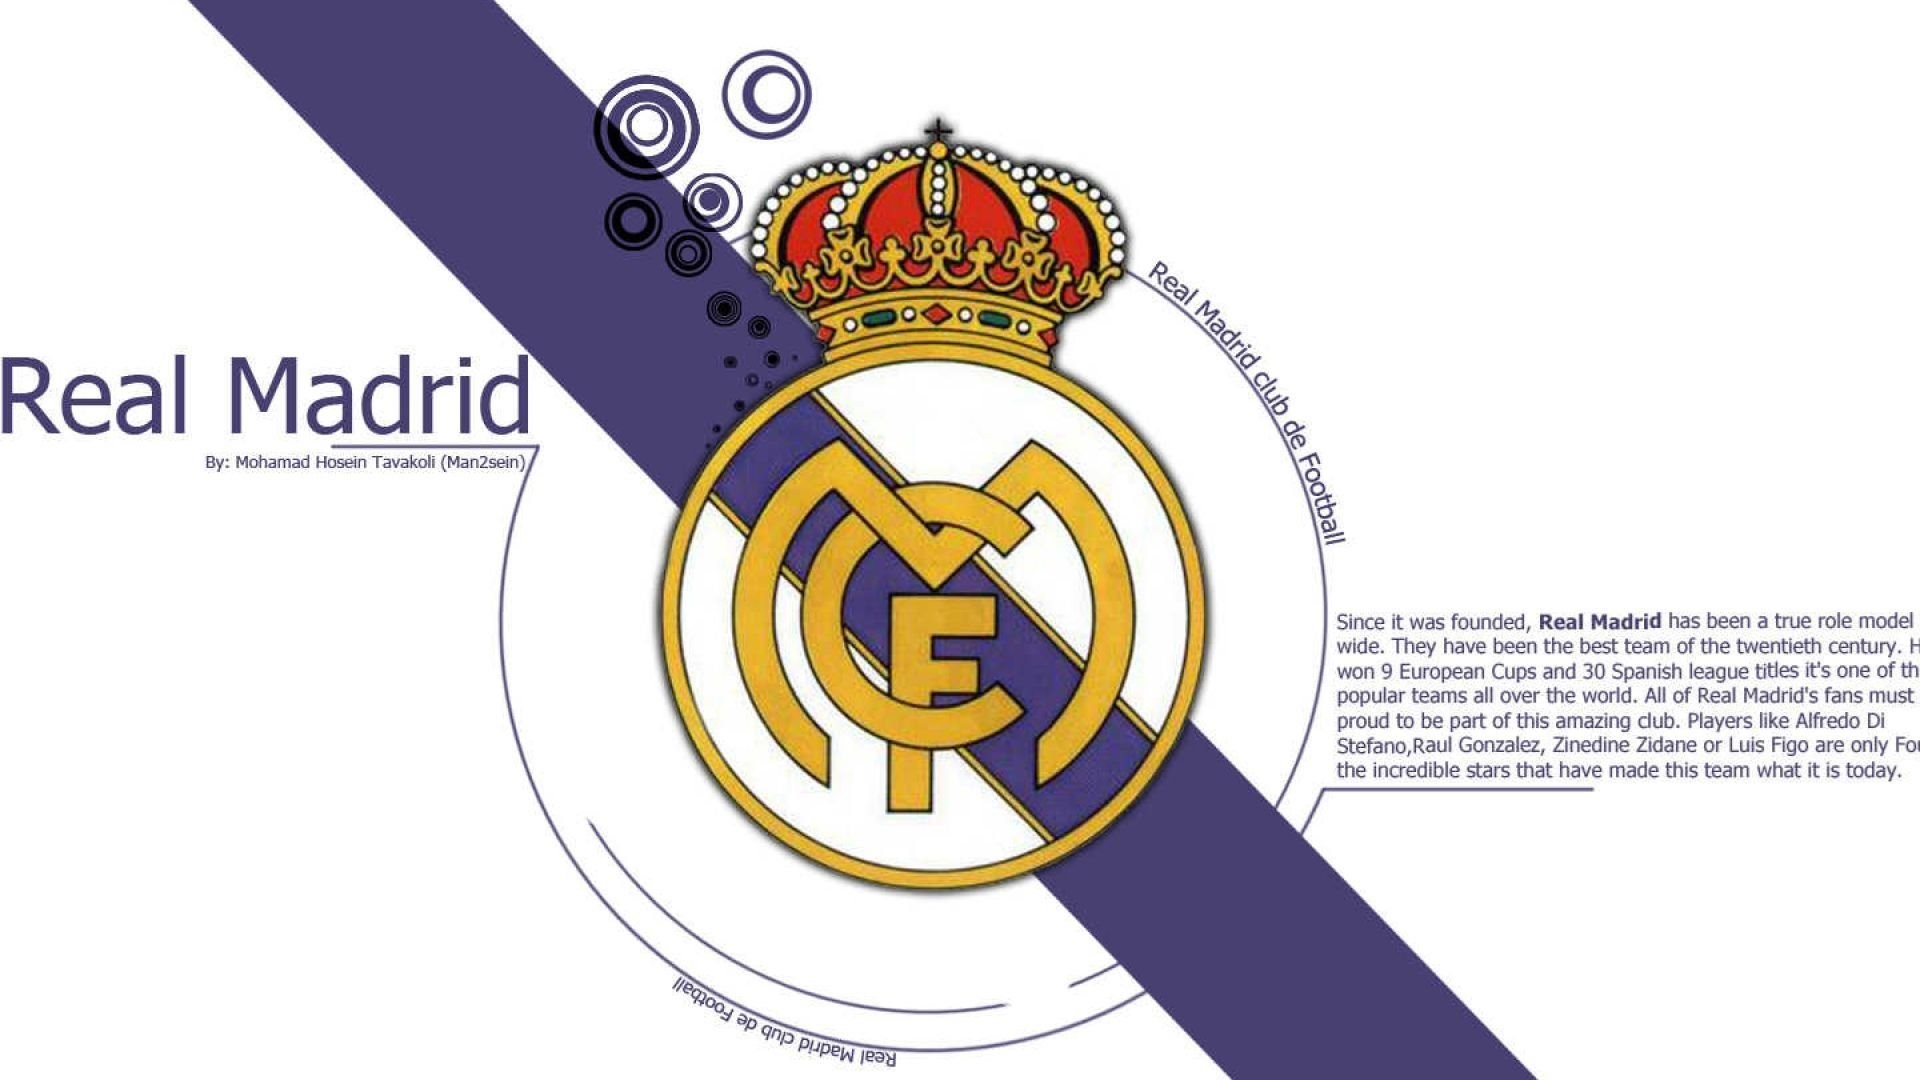 real madrid wallpaper image picture hd